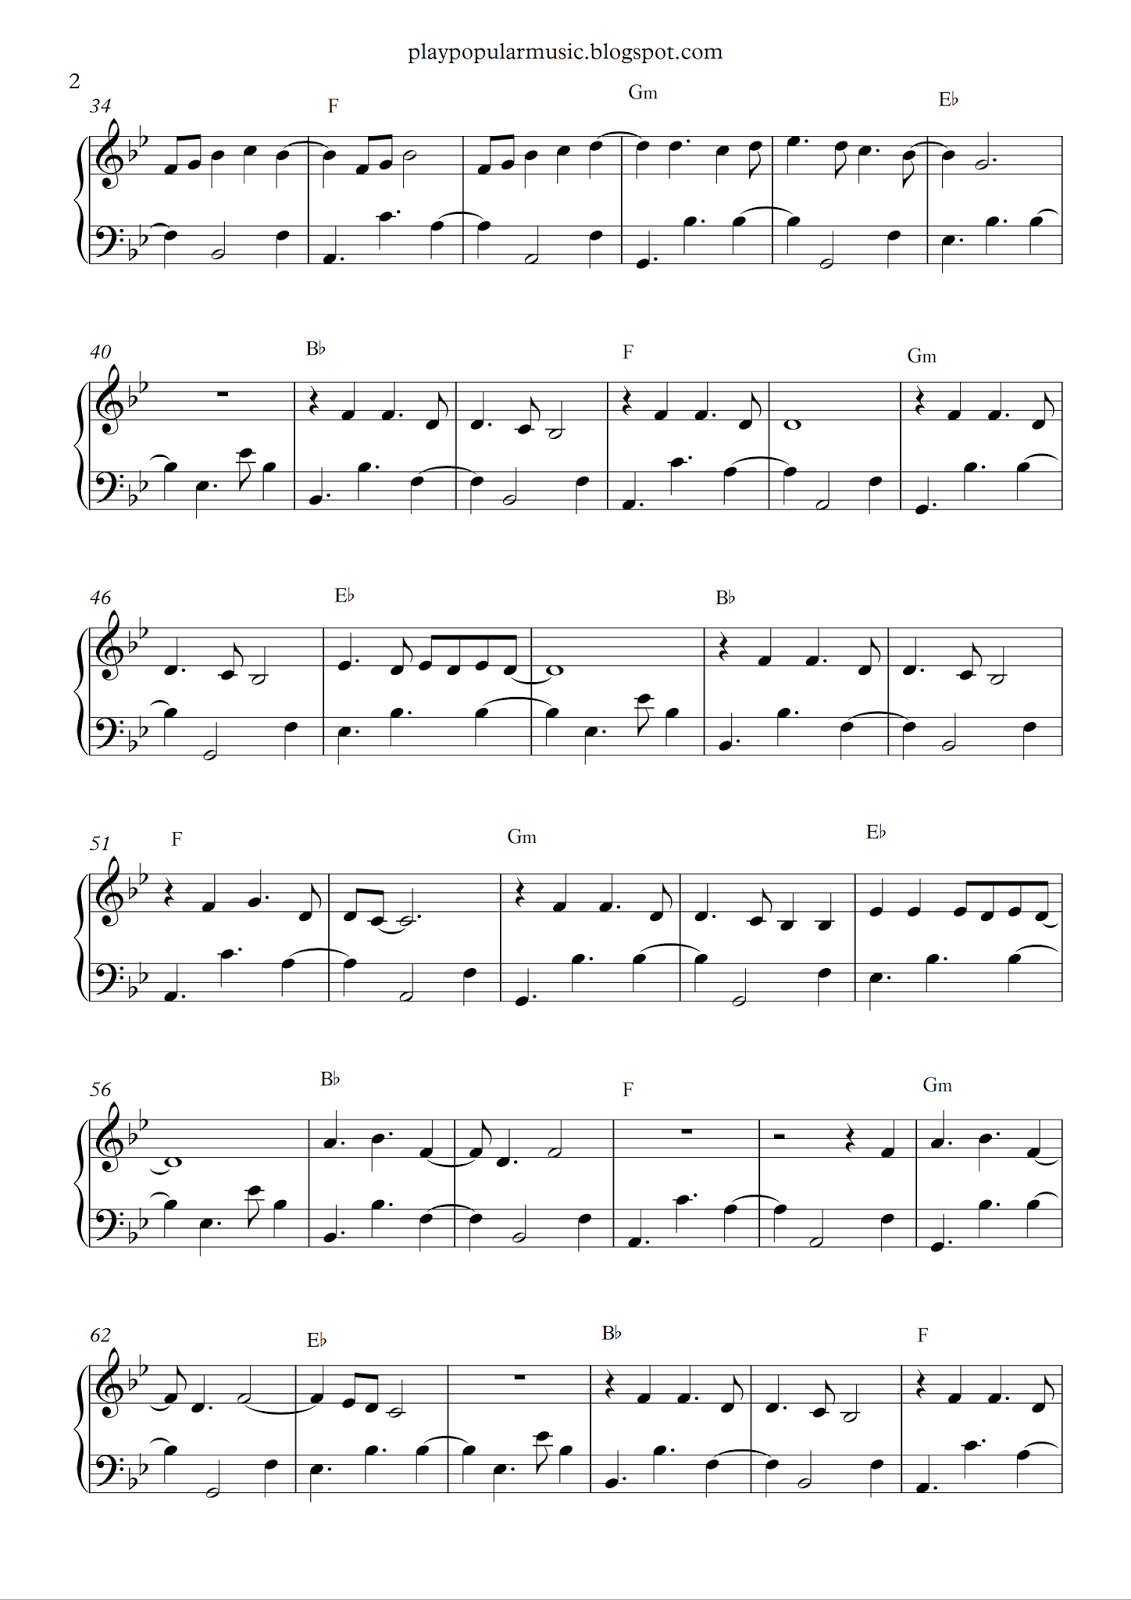 Free piano sheet music say you wont let go james arthurpdf ill free piano sheet music say you wont let go james arthurpdf i hexwebz Image collections